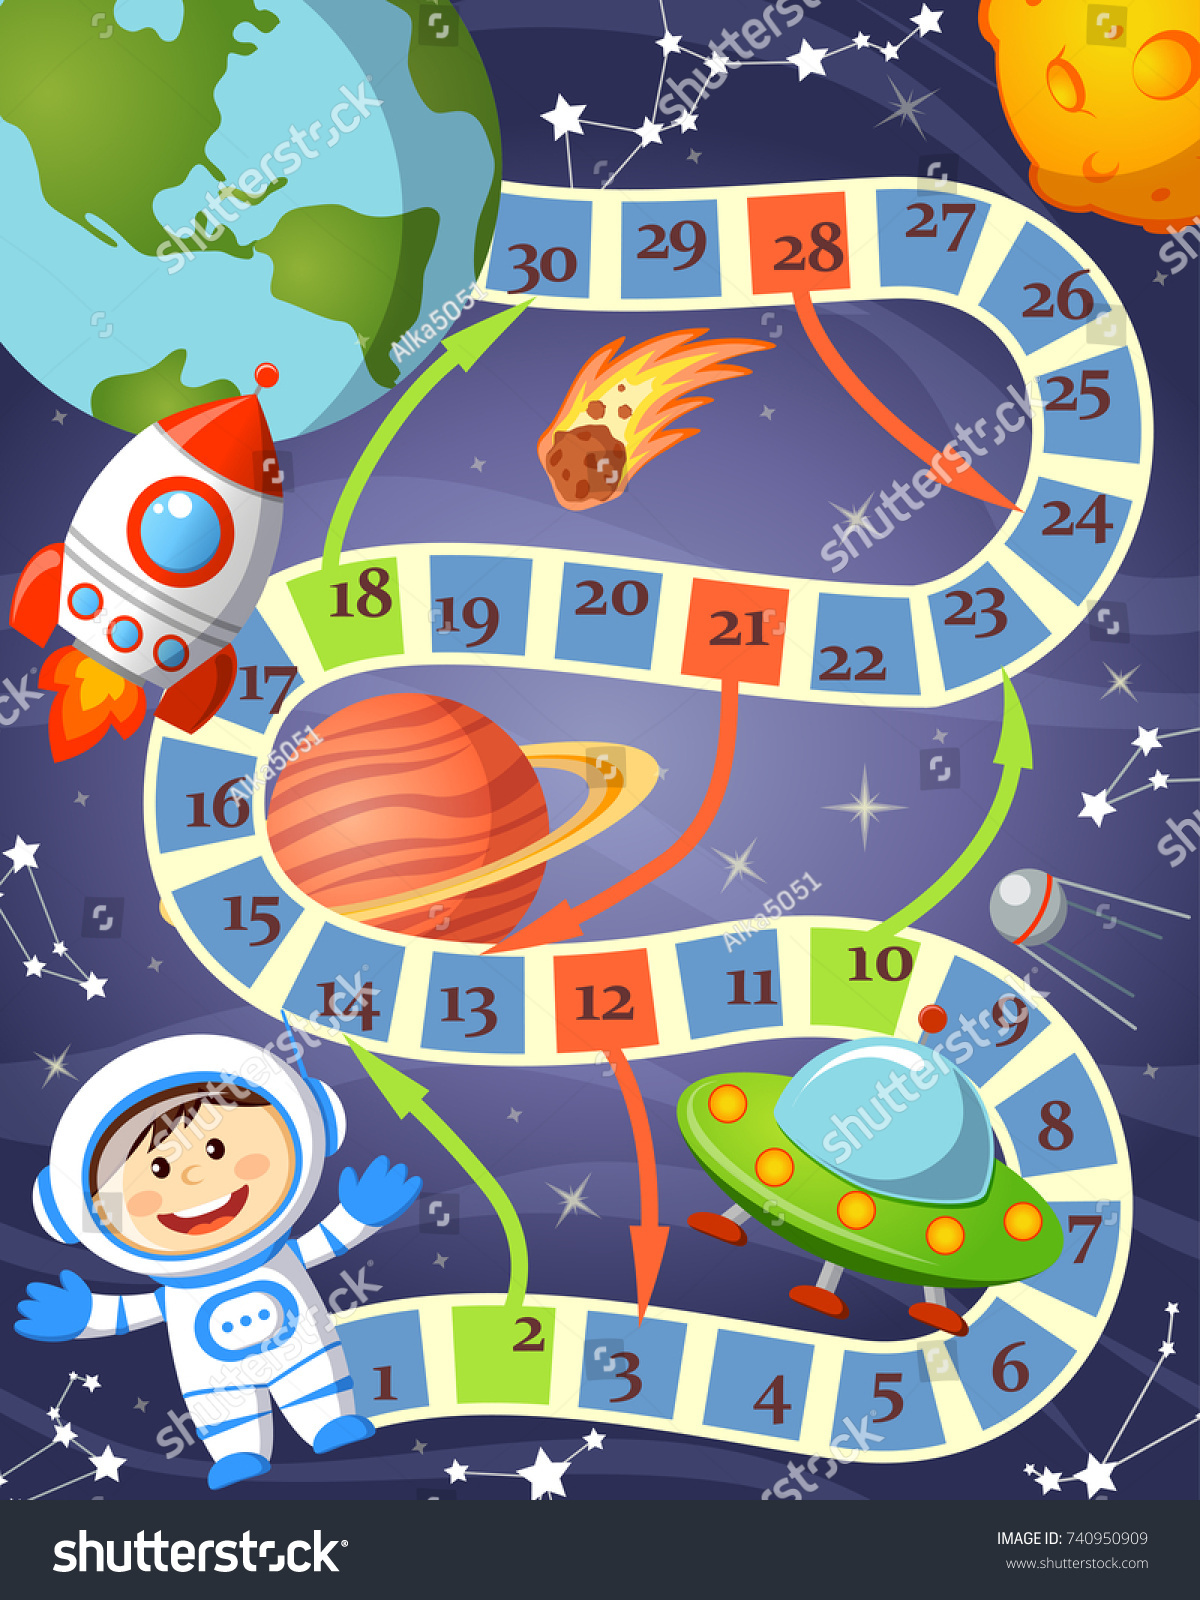 Board Game Cosmonaut Ufo Rocket Planet Stock Vector